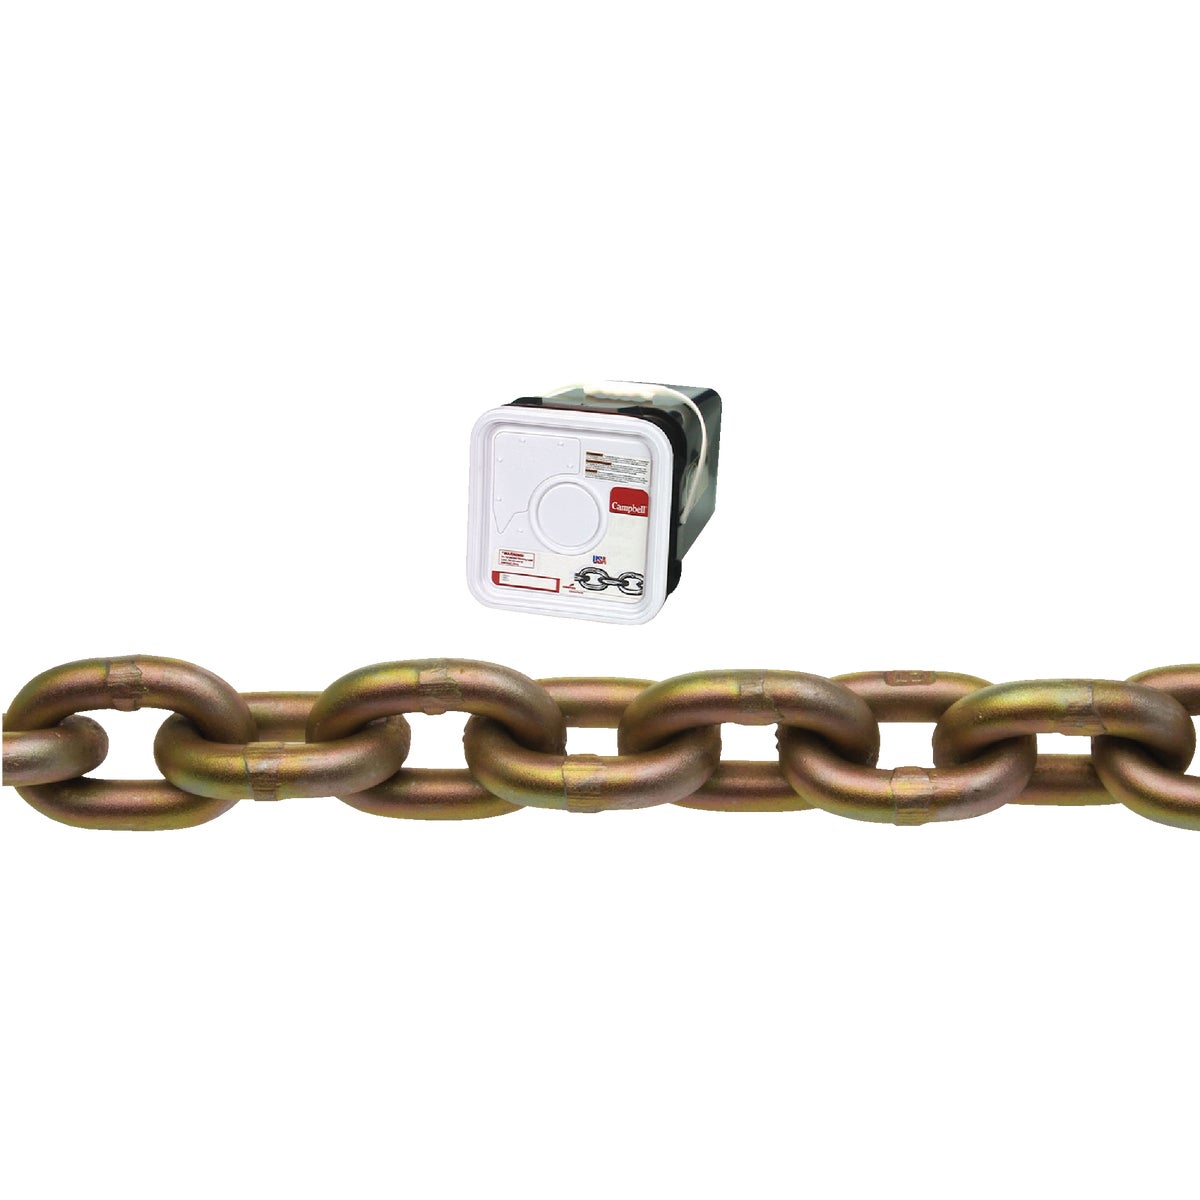 "45' 3/8"" G70 CHAIN - 0510626 by Cooper Campbell Apex"